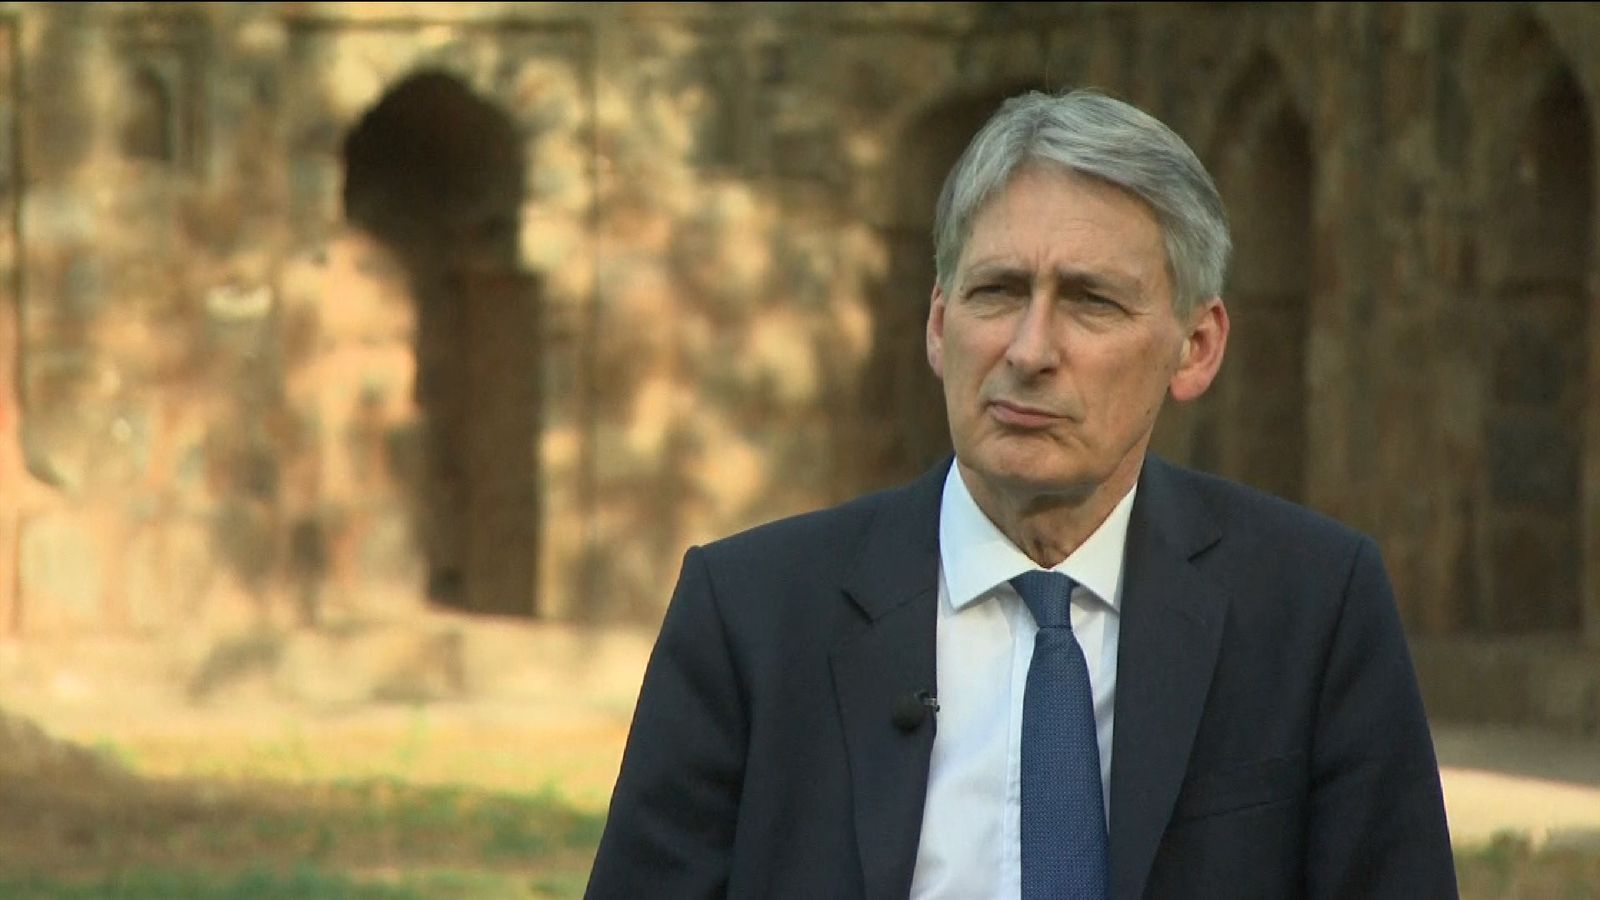 Philip Hammond is in India for trade talks